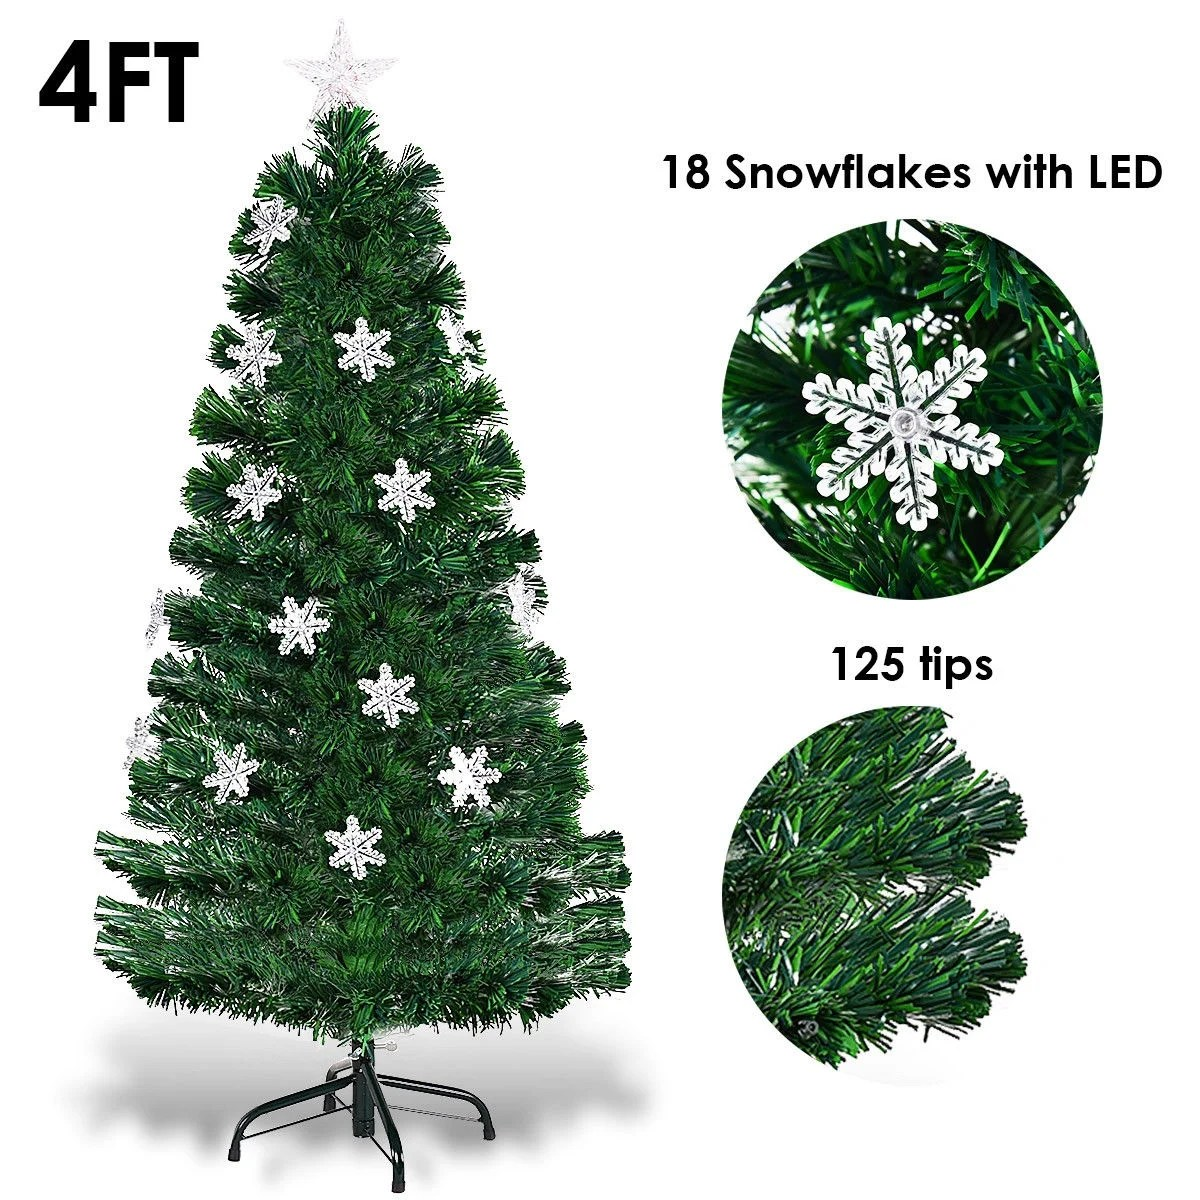 How To Decorate A 4 Ft Christmas Tree